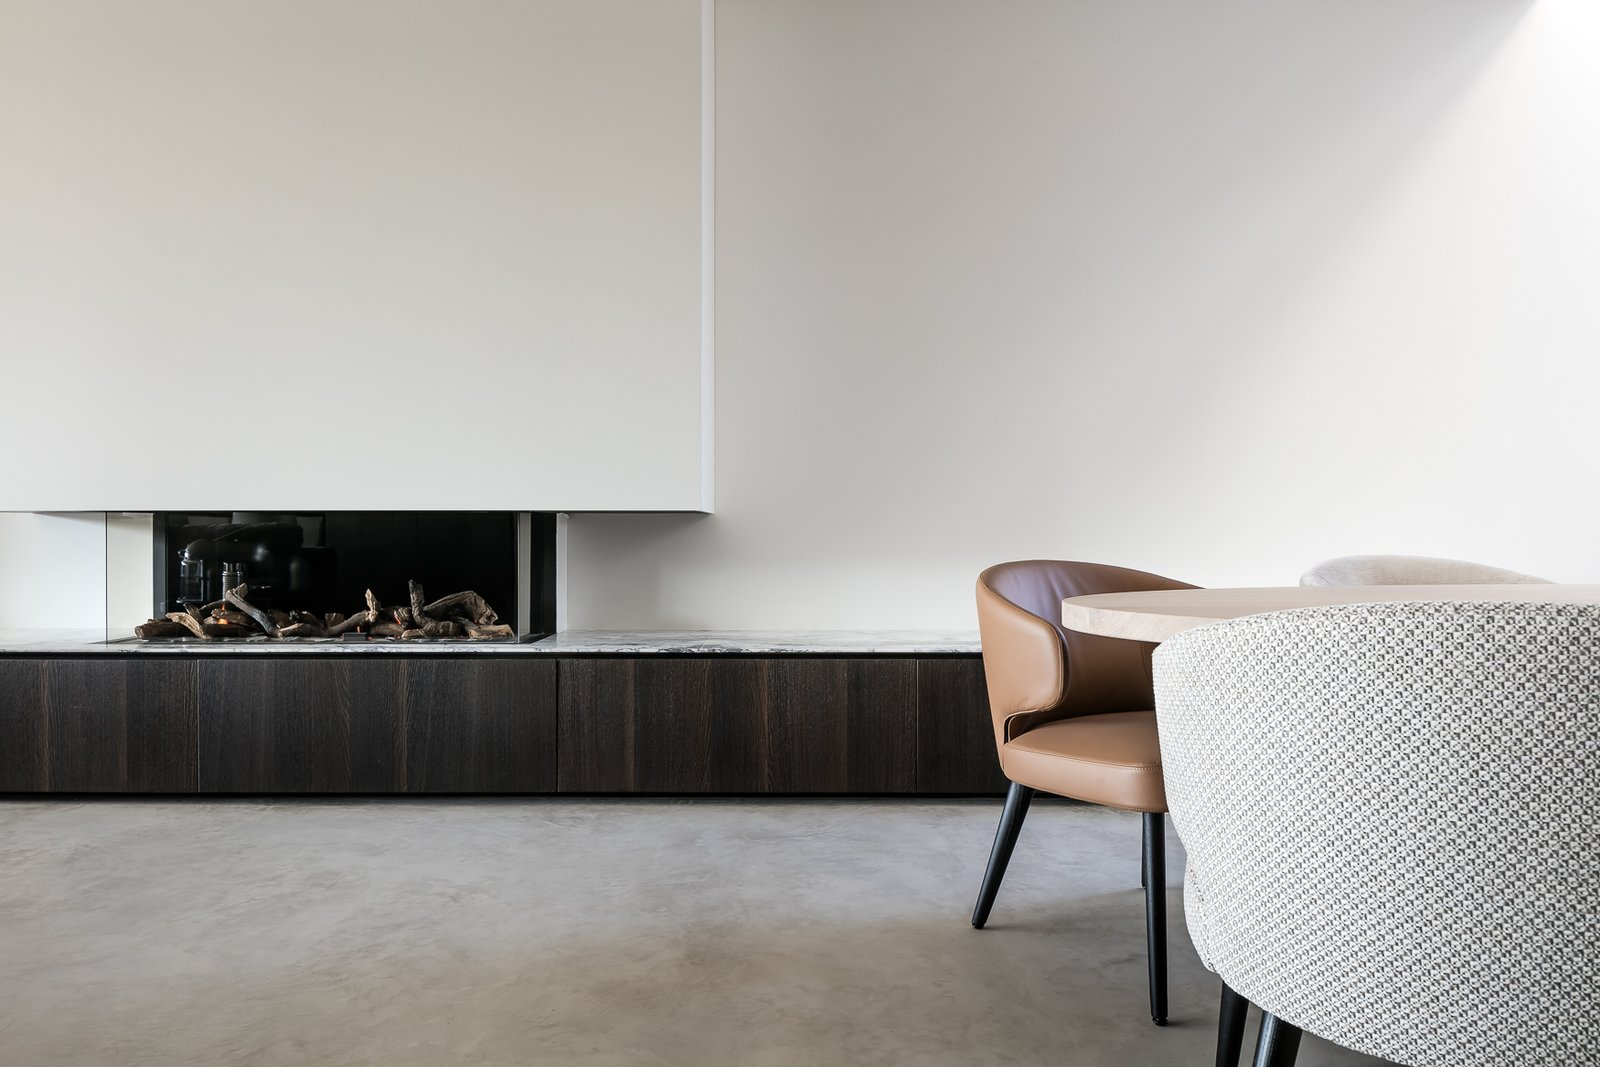 Tagged: Living Room, Standard Layout Fireplace, Concrete Floor, and Chair.  Circu House by Leibal